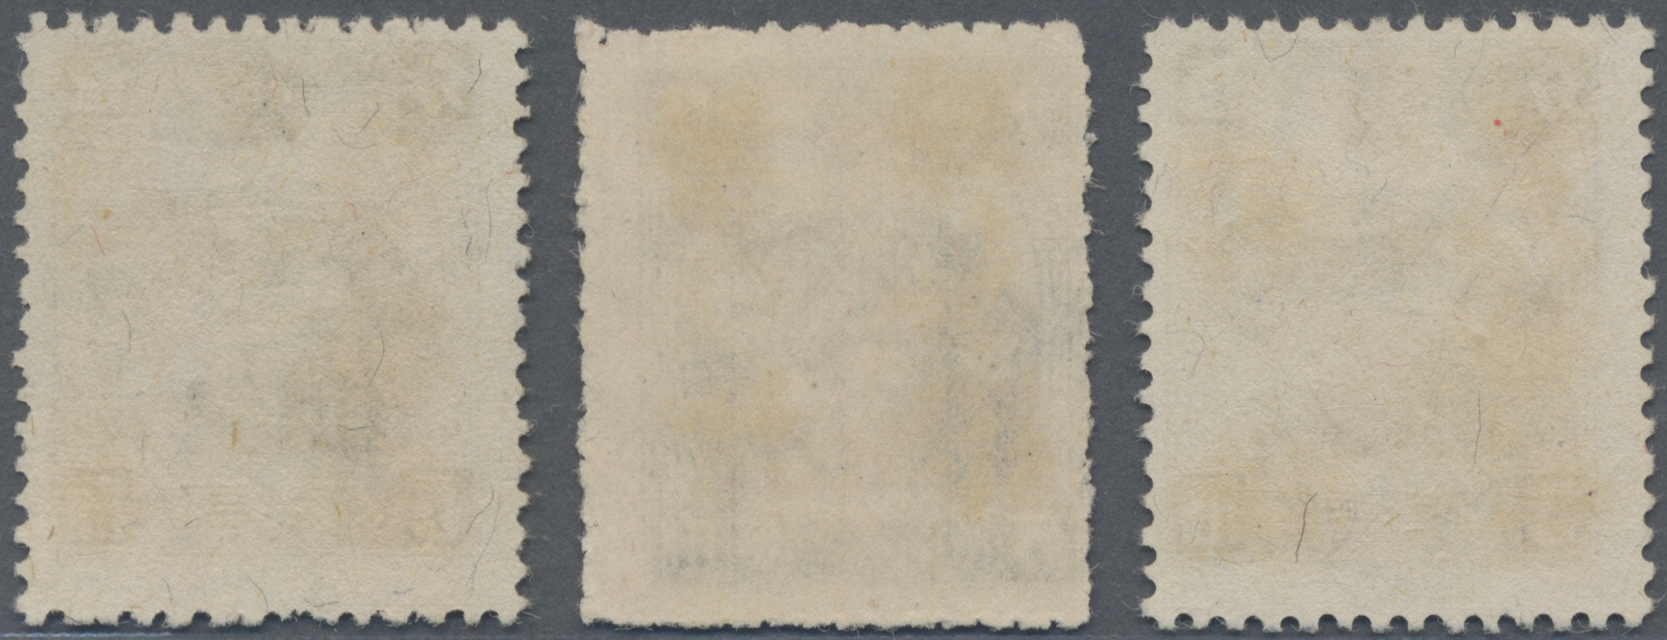 Lot 05178 - China - Volksrepublik - Provinzen  -  Auktionshaus Christoph Gärtner GmbH & Co. KG Sale #46 Special Auction China - including Liberated Areas